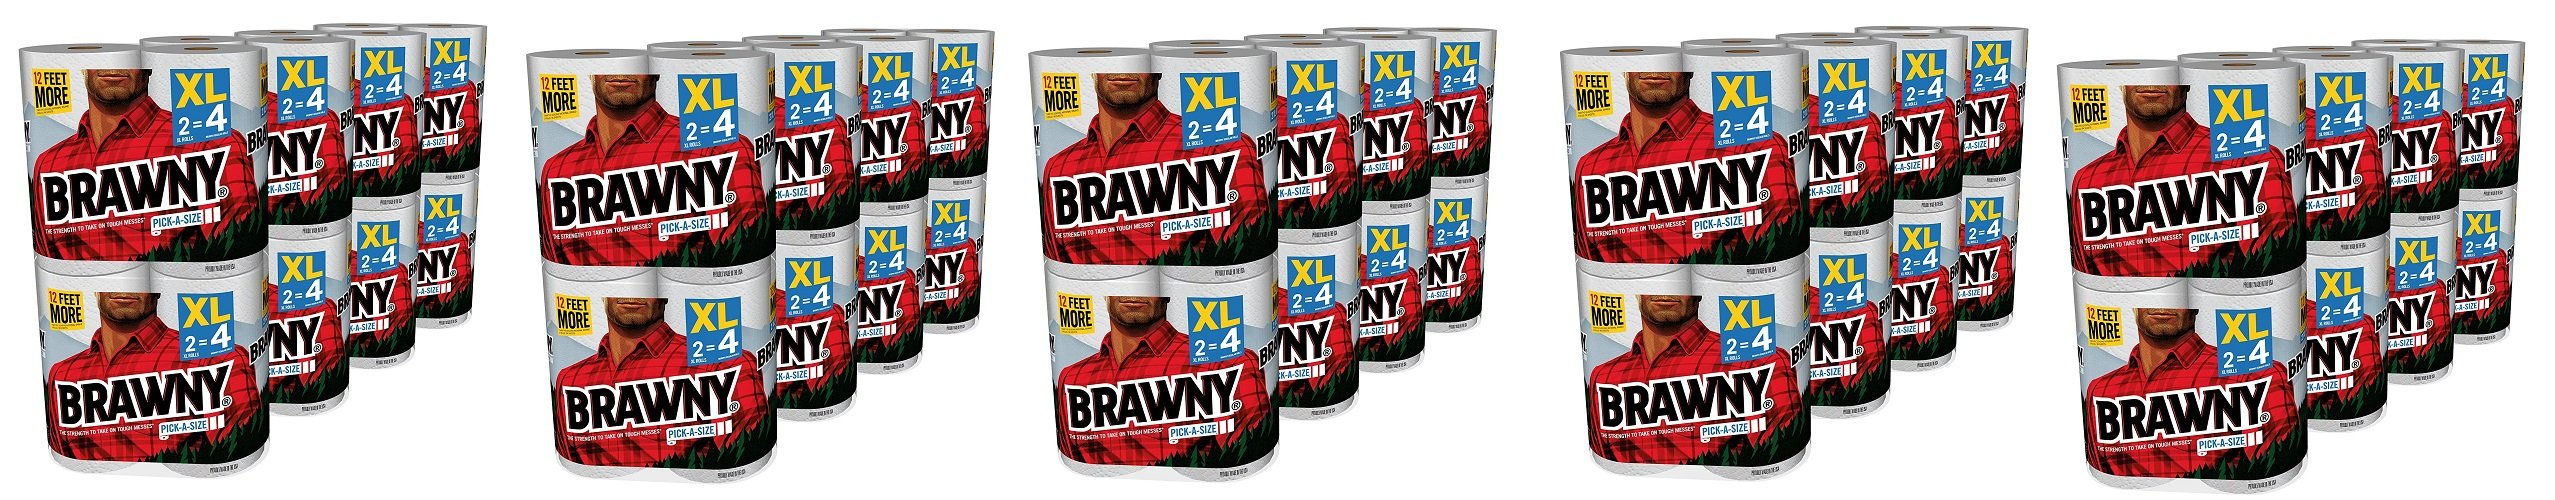 Brawny Pick-a-Size Paper Towels gnyCDJ, 5Pack (16 X-Large)